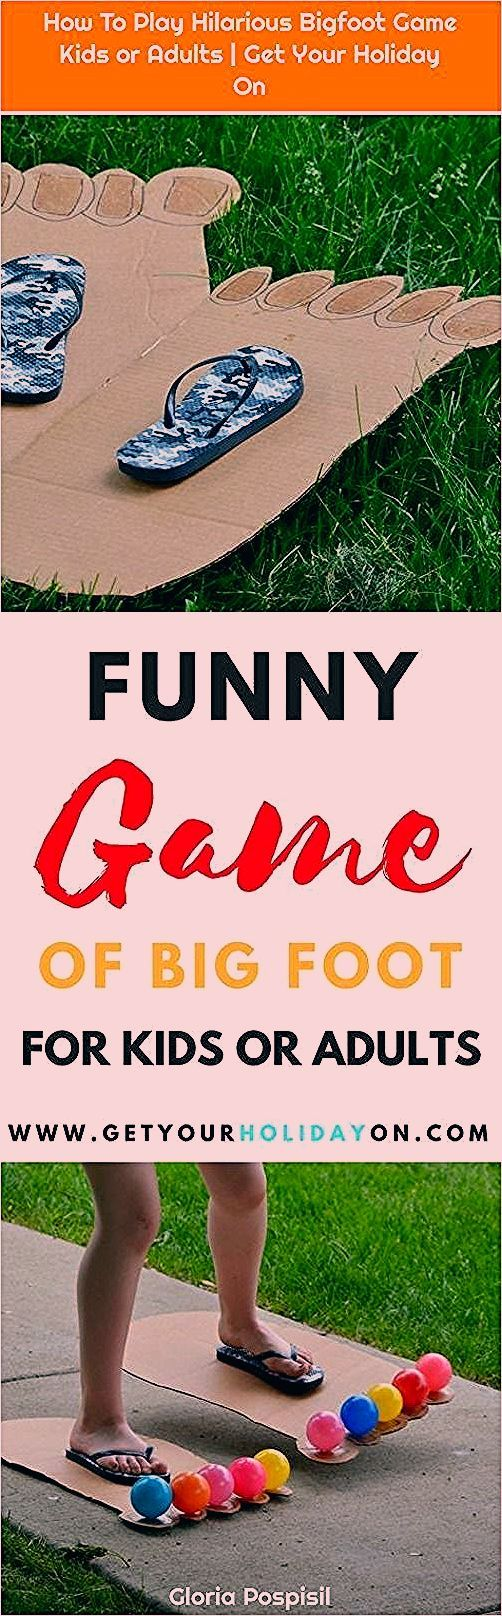 Fun Party Games For Adults Hilarious ` Fun Party Games